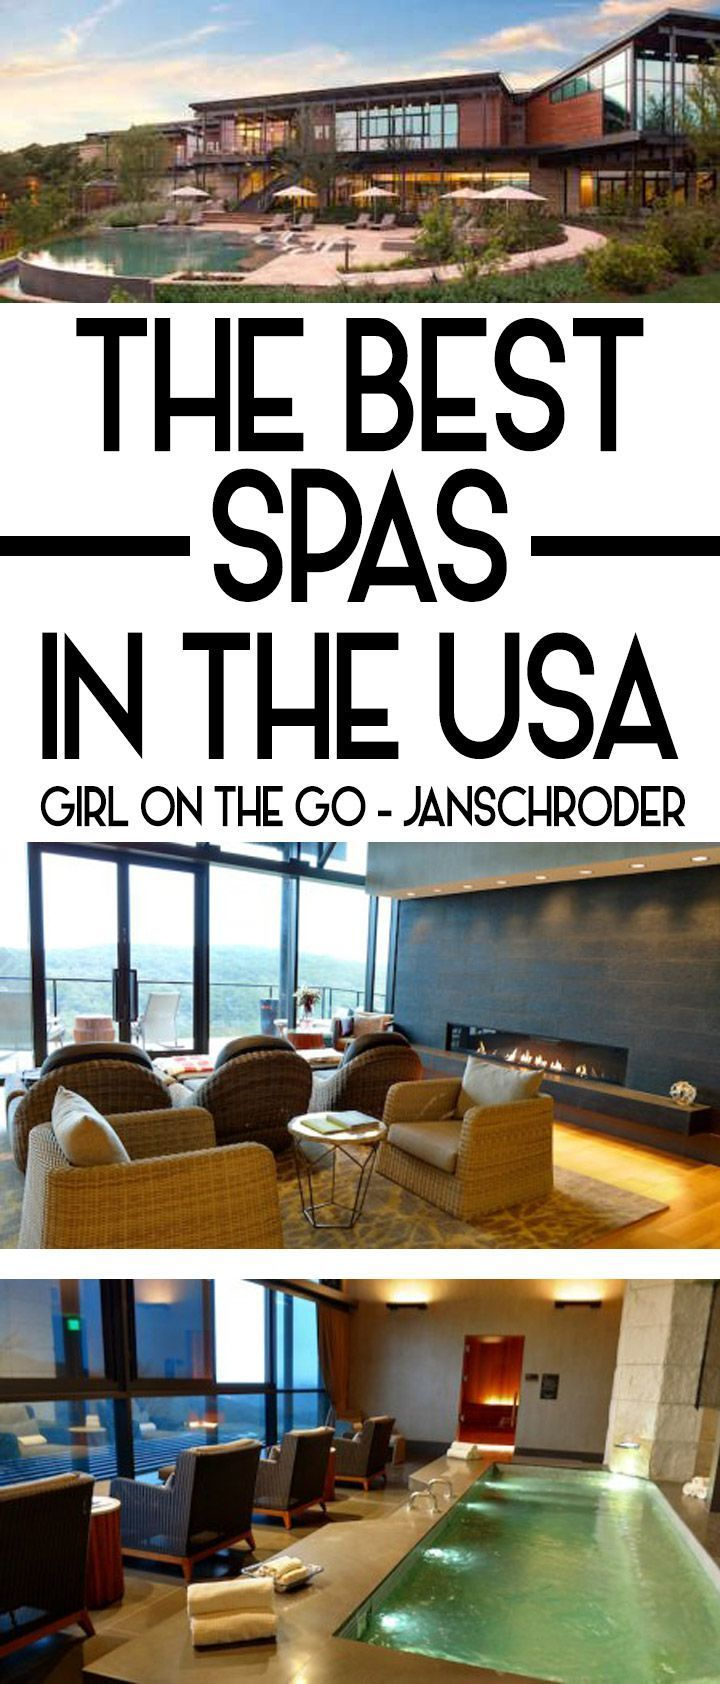 25 beautiful girls getaway weekend ideas on pinterest for Spa getaways near chicago